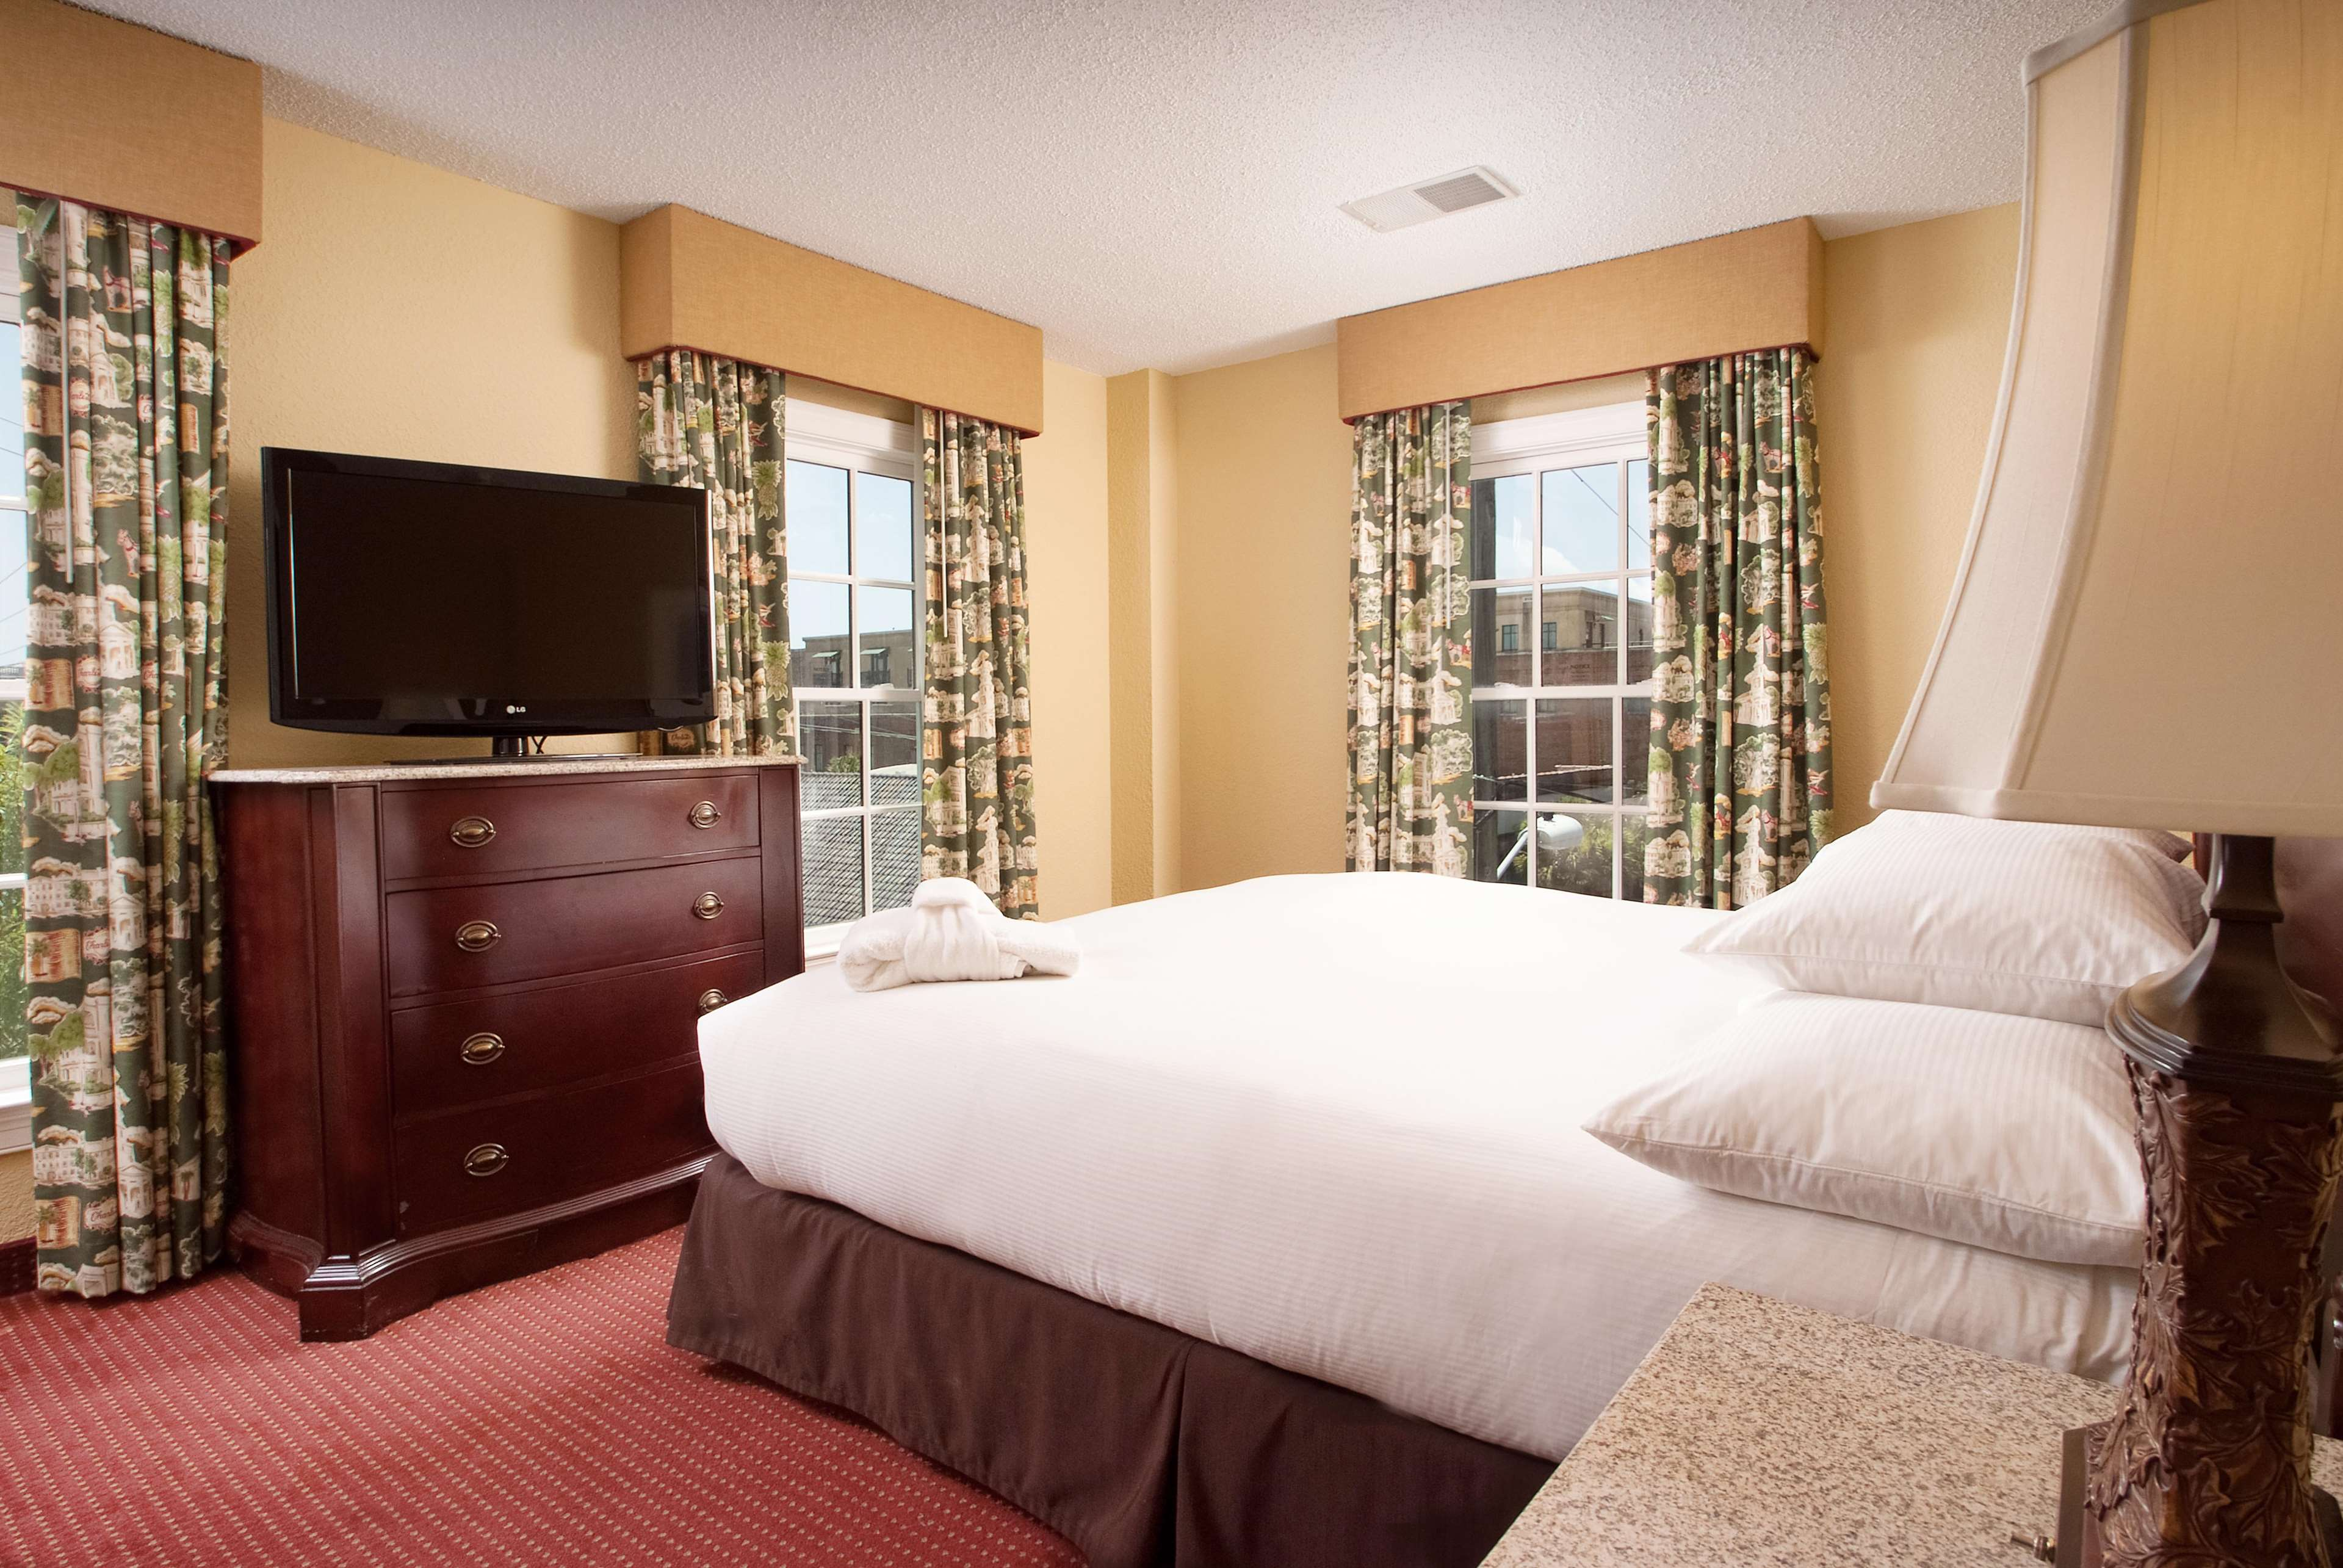 DoubleTree by Hilton Hotel & Suites Charleston - Historic District image 39